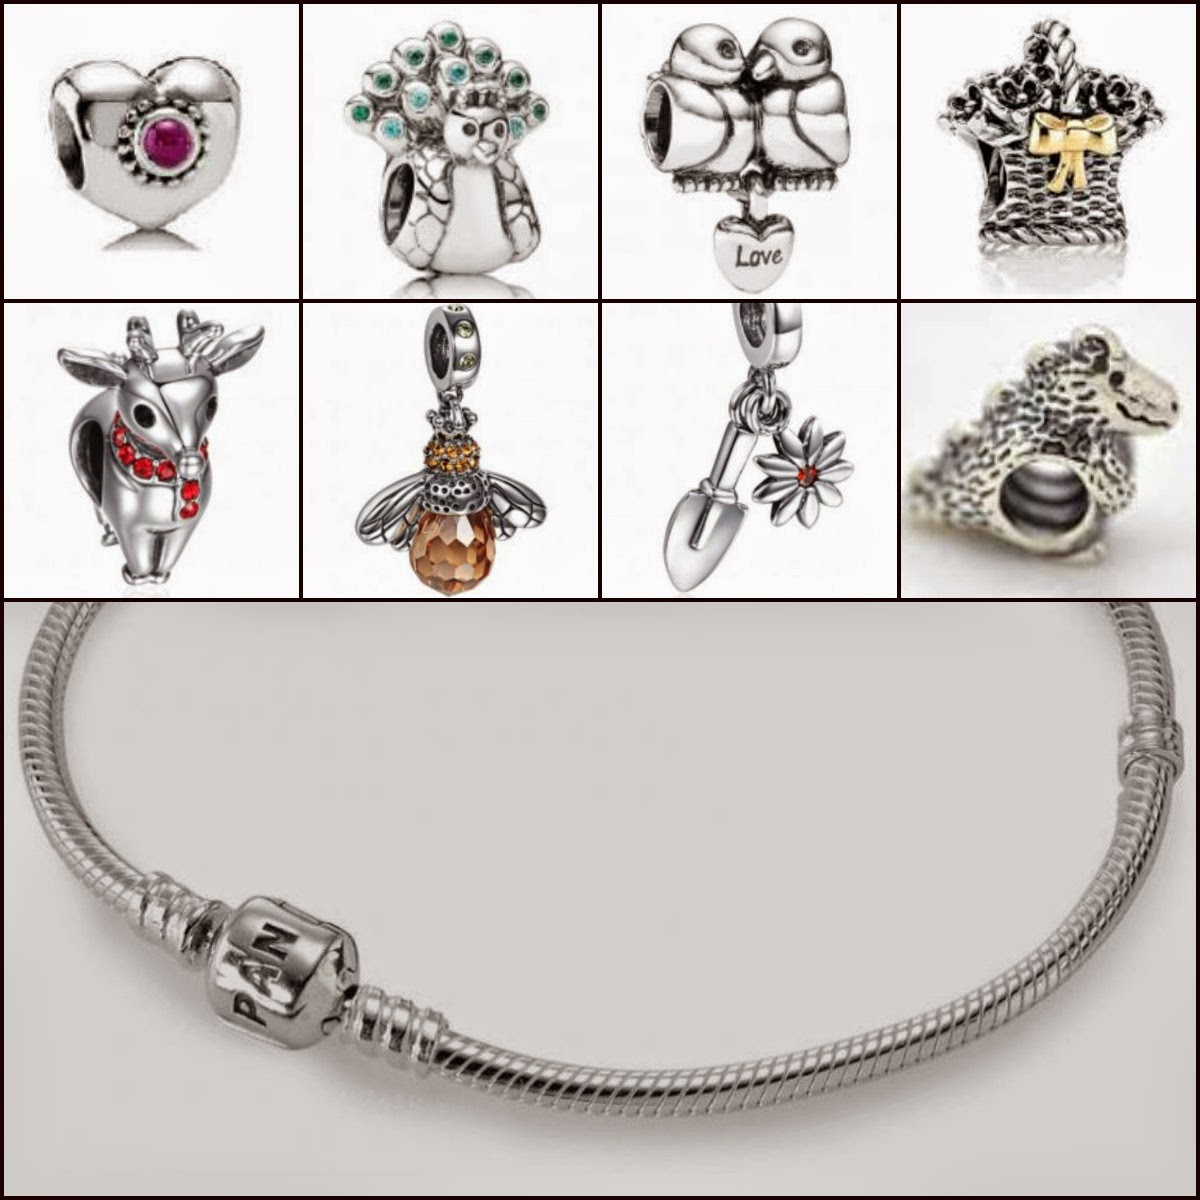 At Christmas He Bought Me My Very First Pandora Charm Bracelet And Charms  (above) But I Hadn't Got Around To Showing You Yet